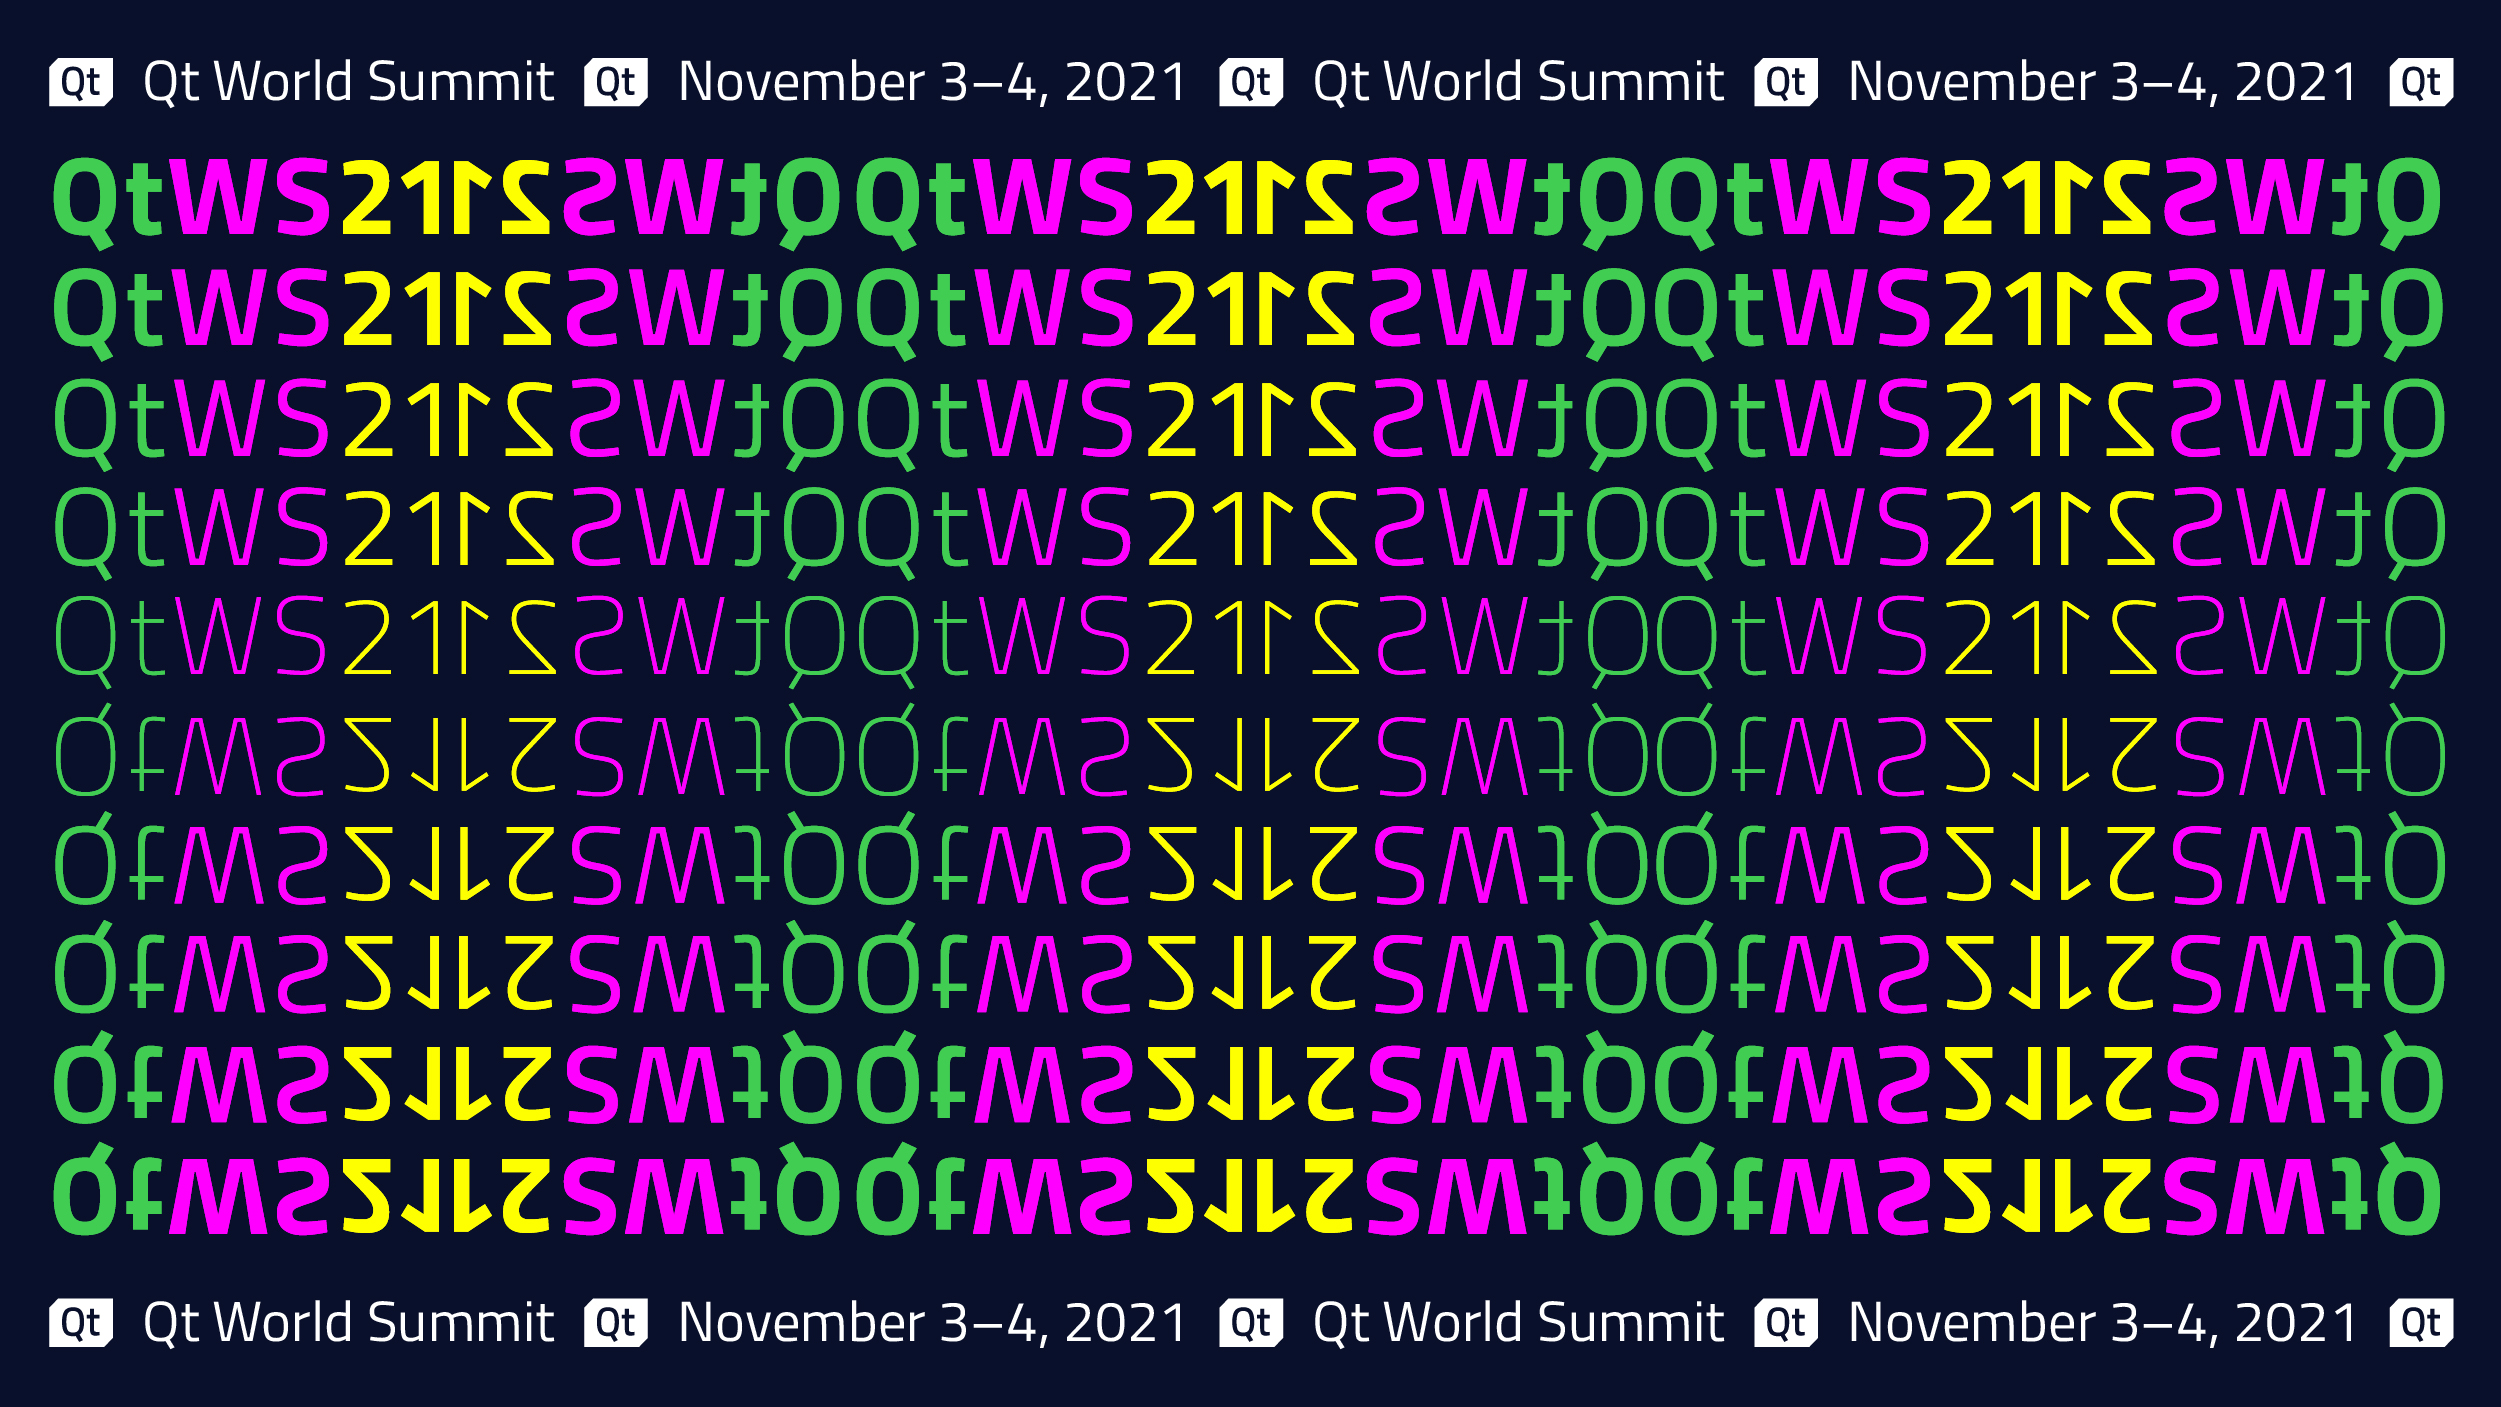 Call for Presentations for Qt World Summit 2021